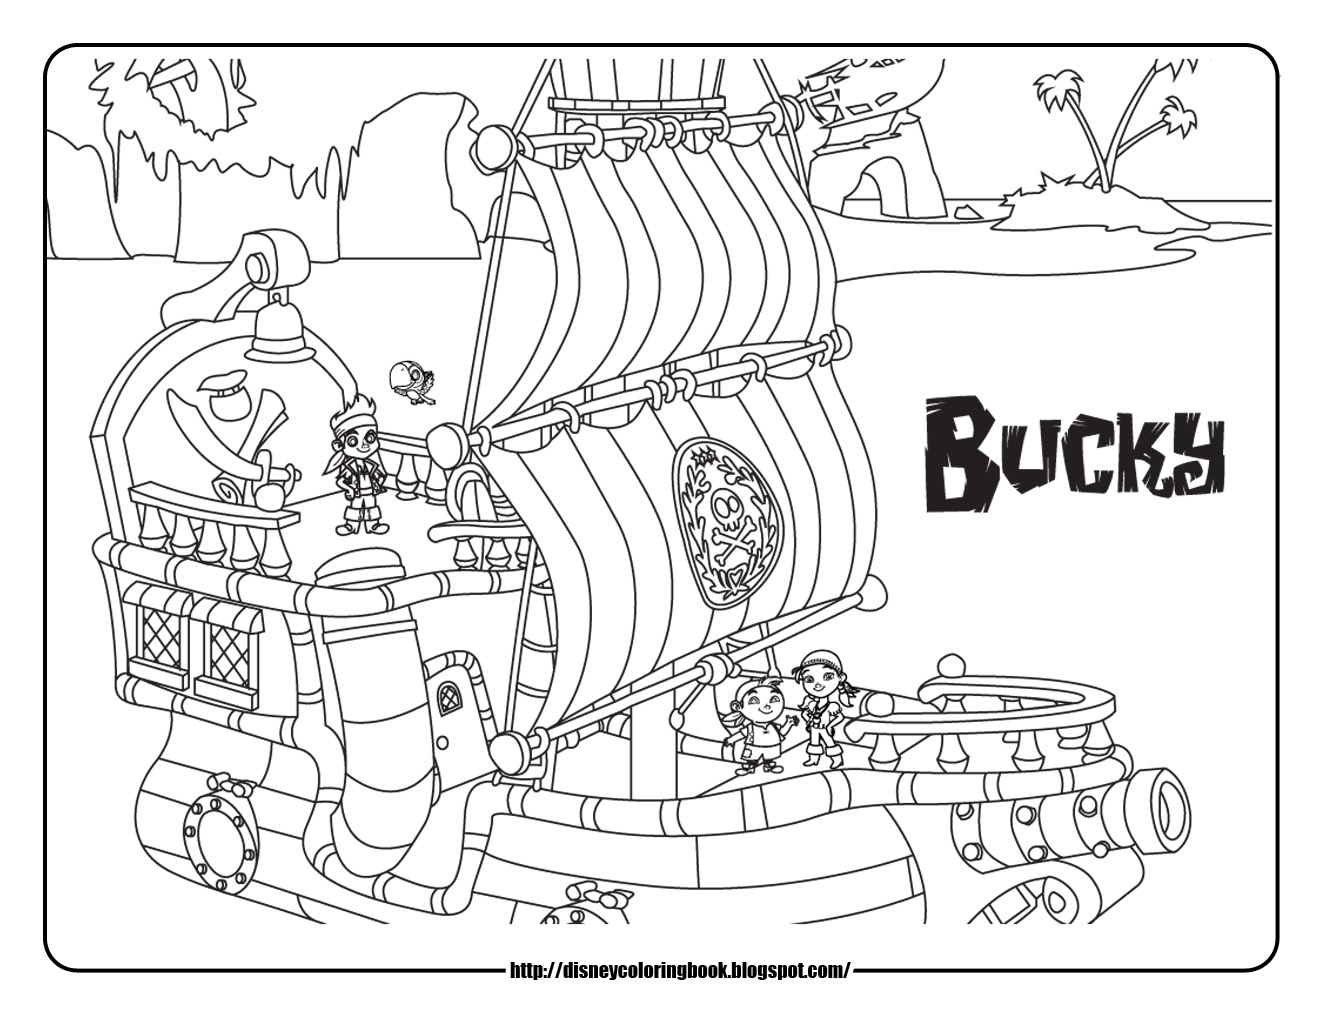 1320x1020 Bucky The Pirate Ship Coloring Pages To Humorous Pict Drawn